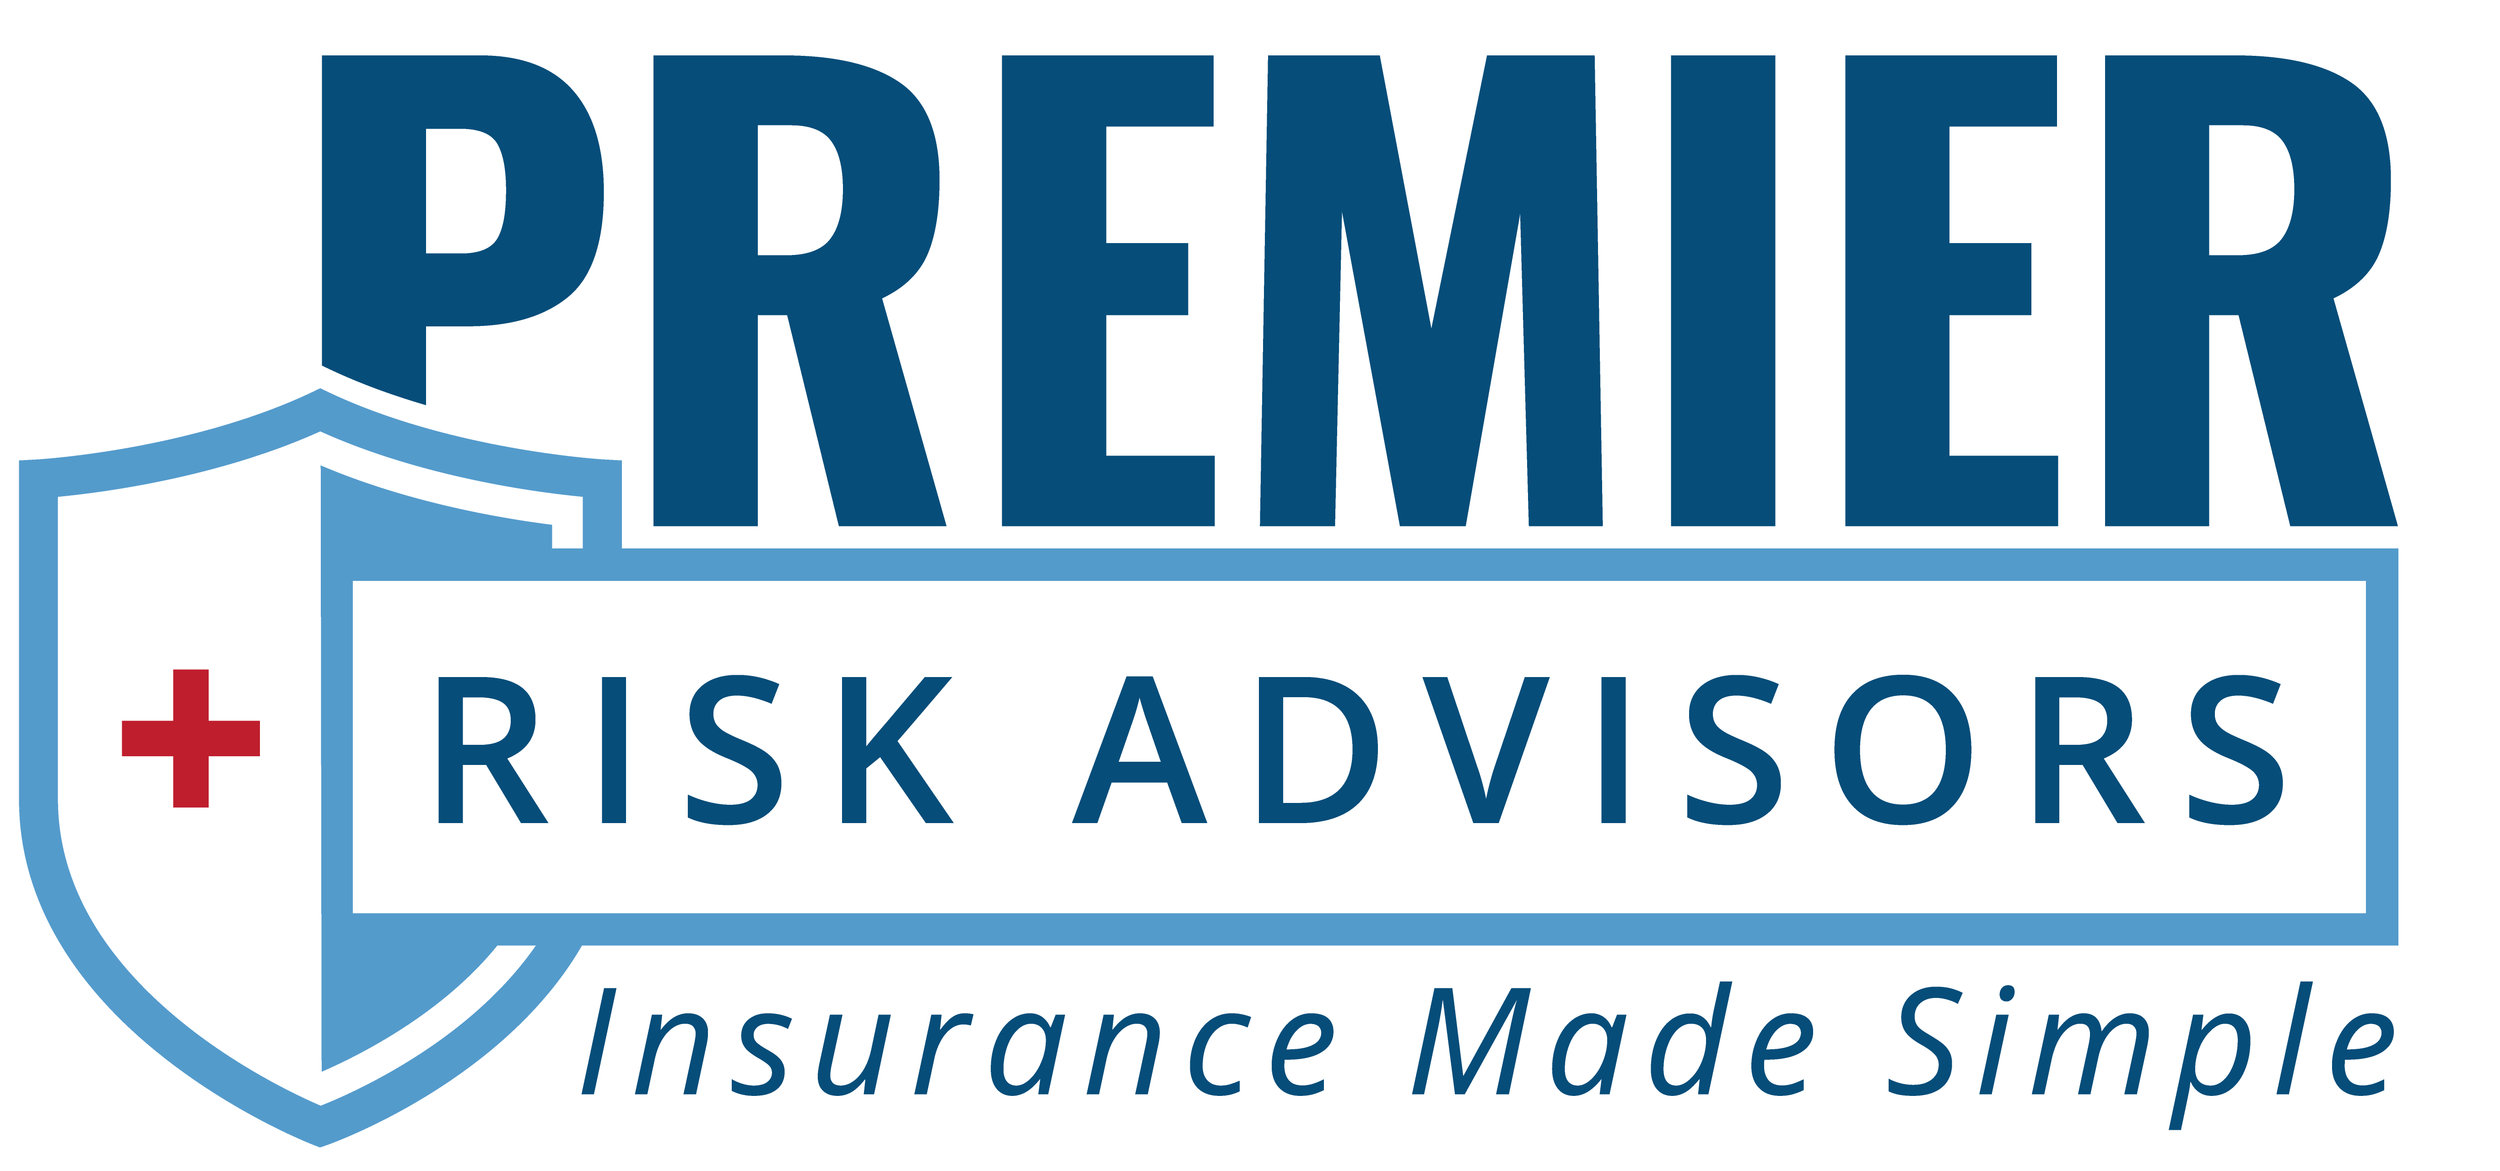 Premier Risk Advisors